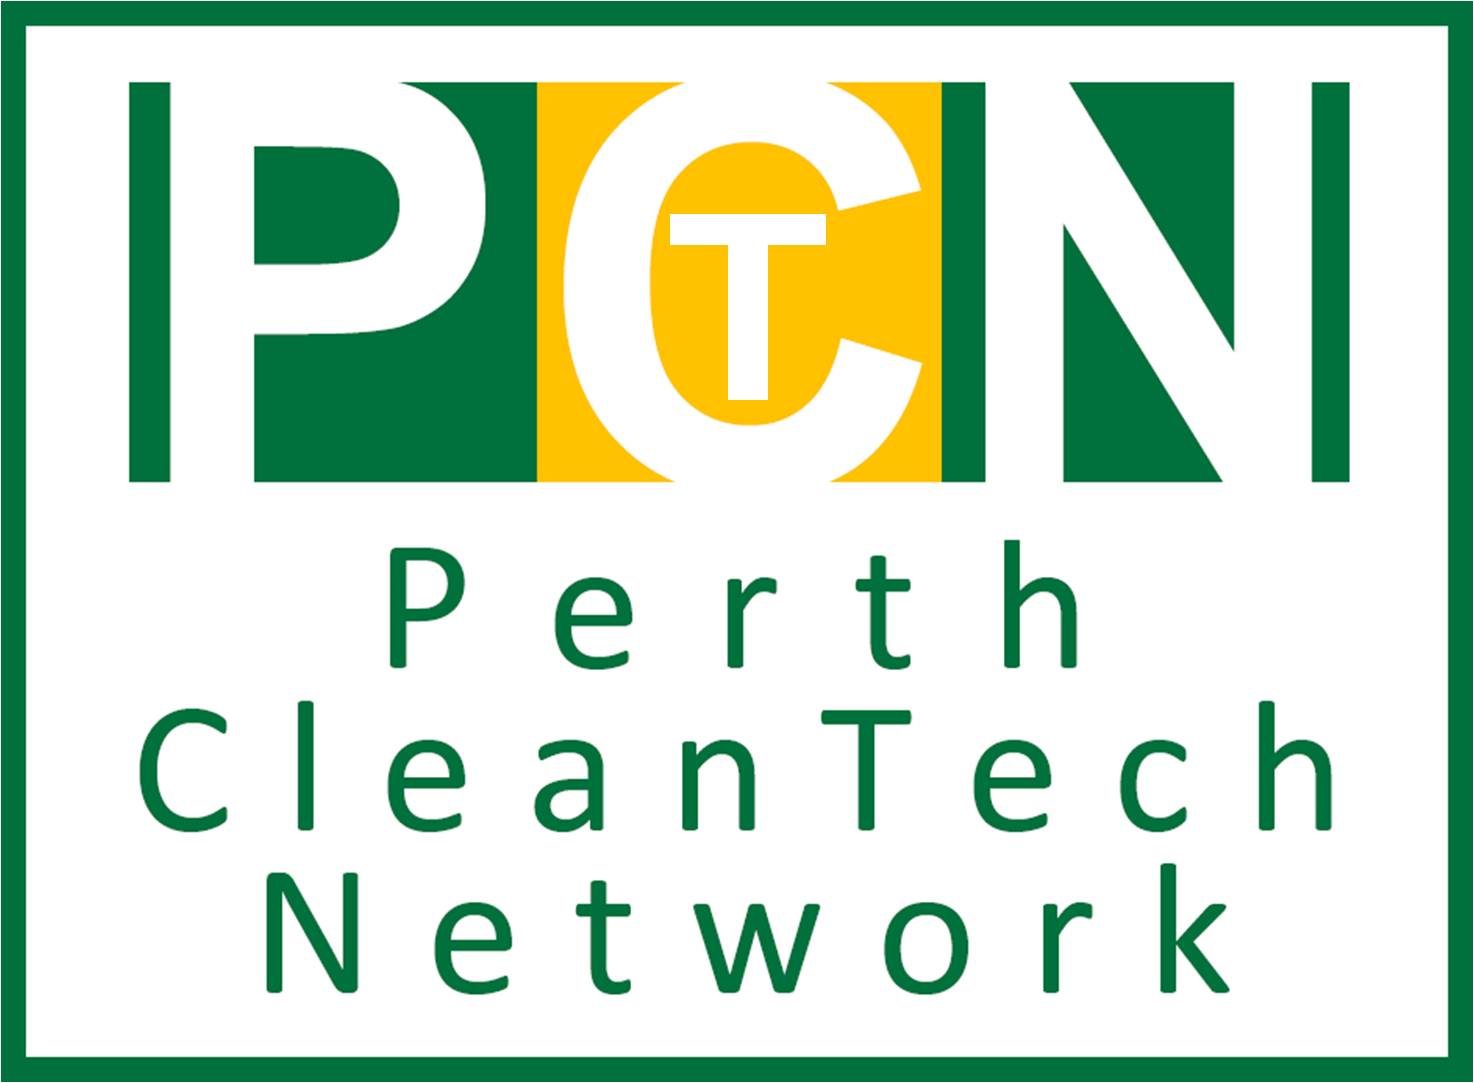 Perth Cleantech Review